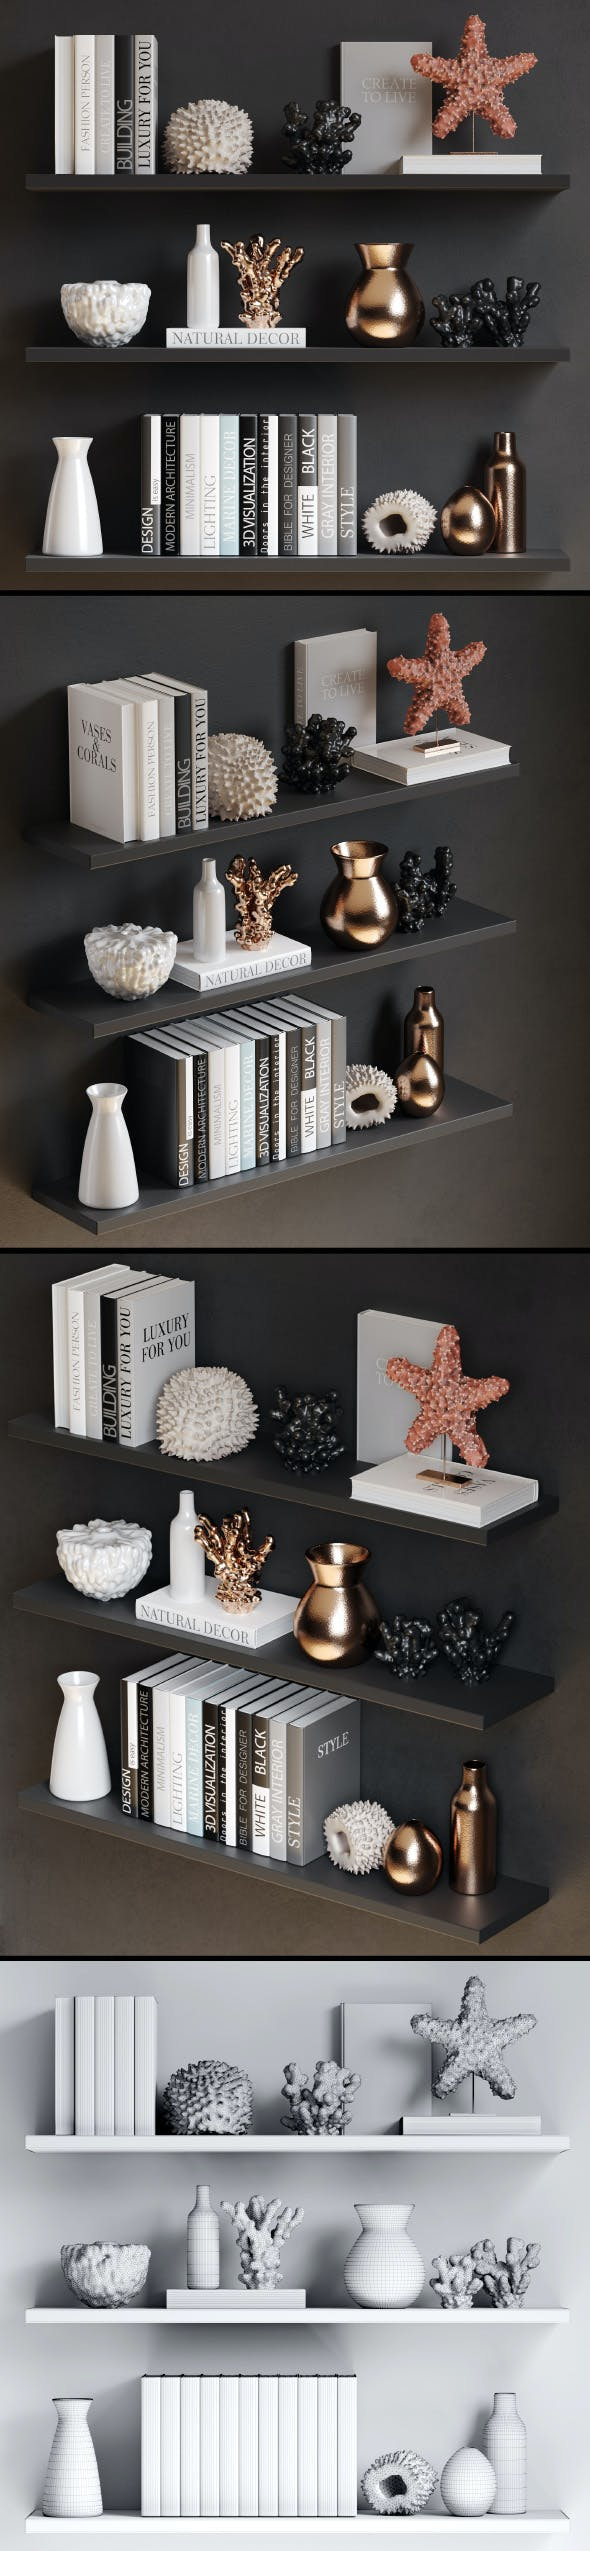 Sea decor with corals, vases and books - 3DOcean Item for Sale